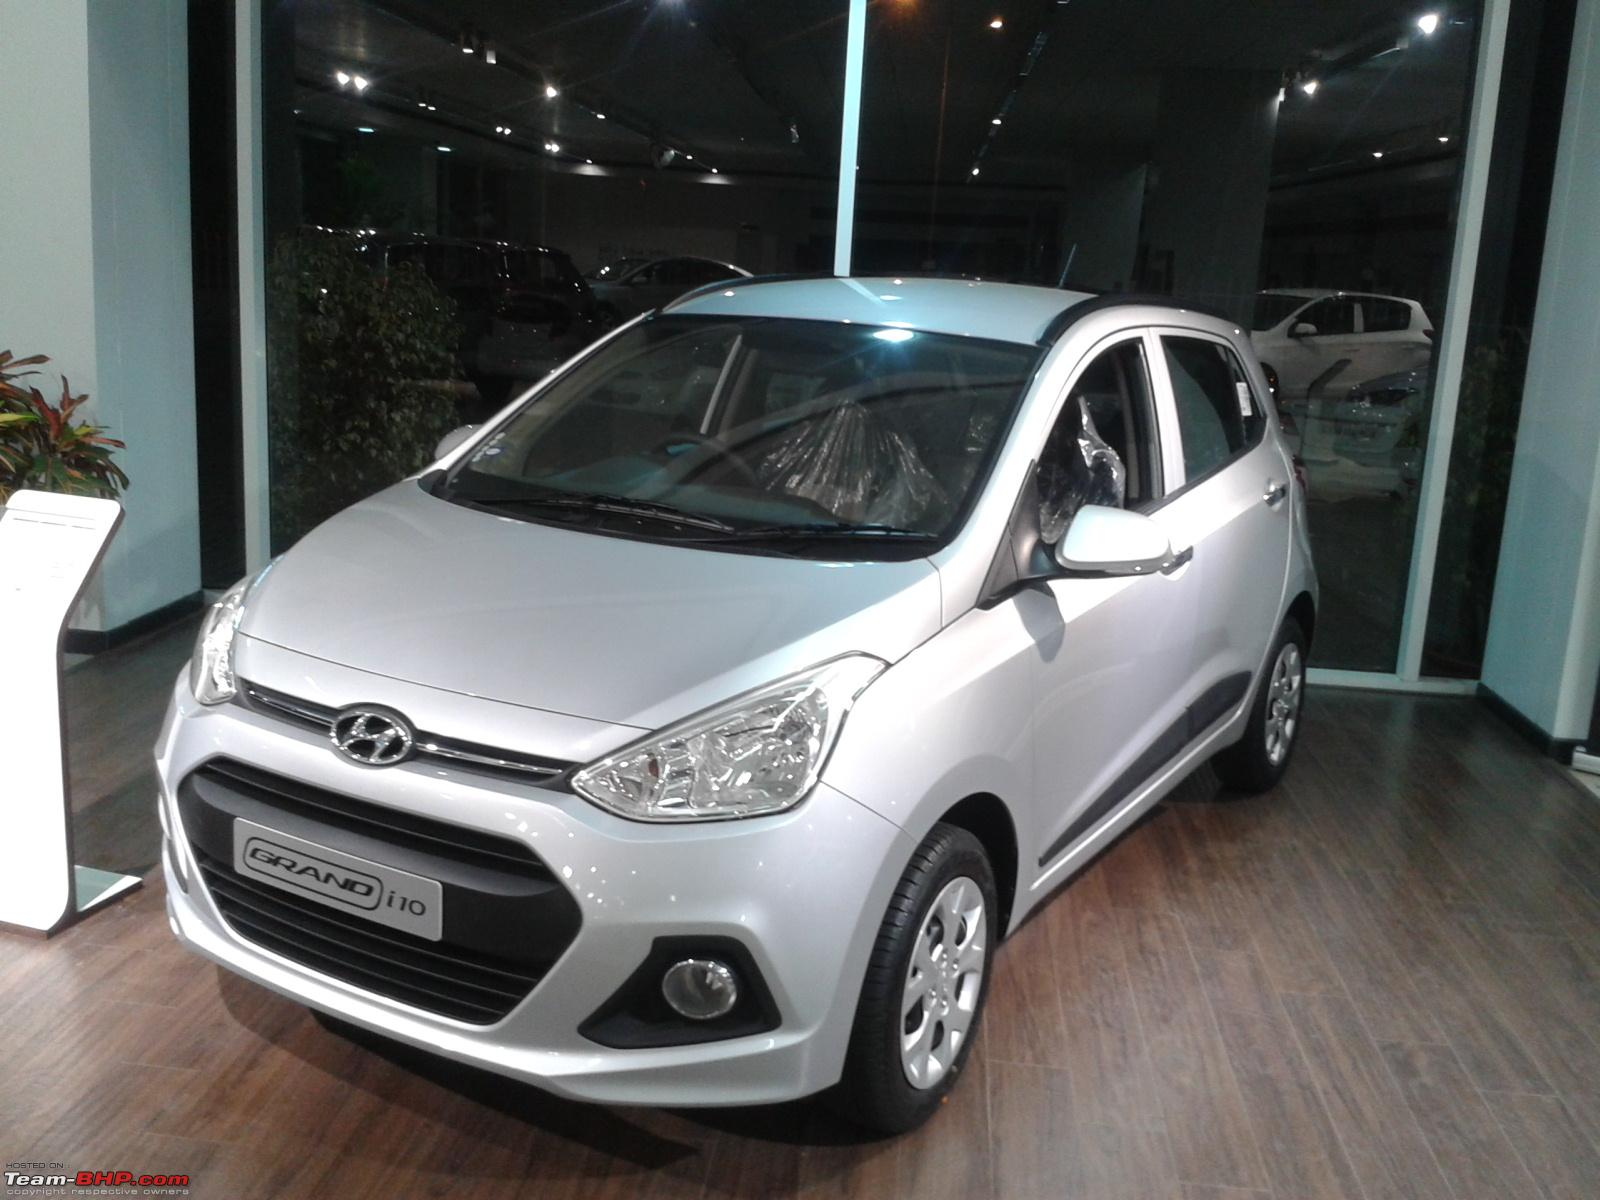 Hyundai i10 / Grand i10 Reviews | Priceprice.com